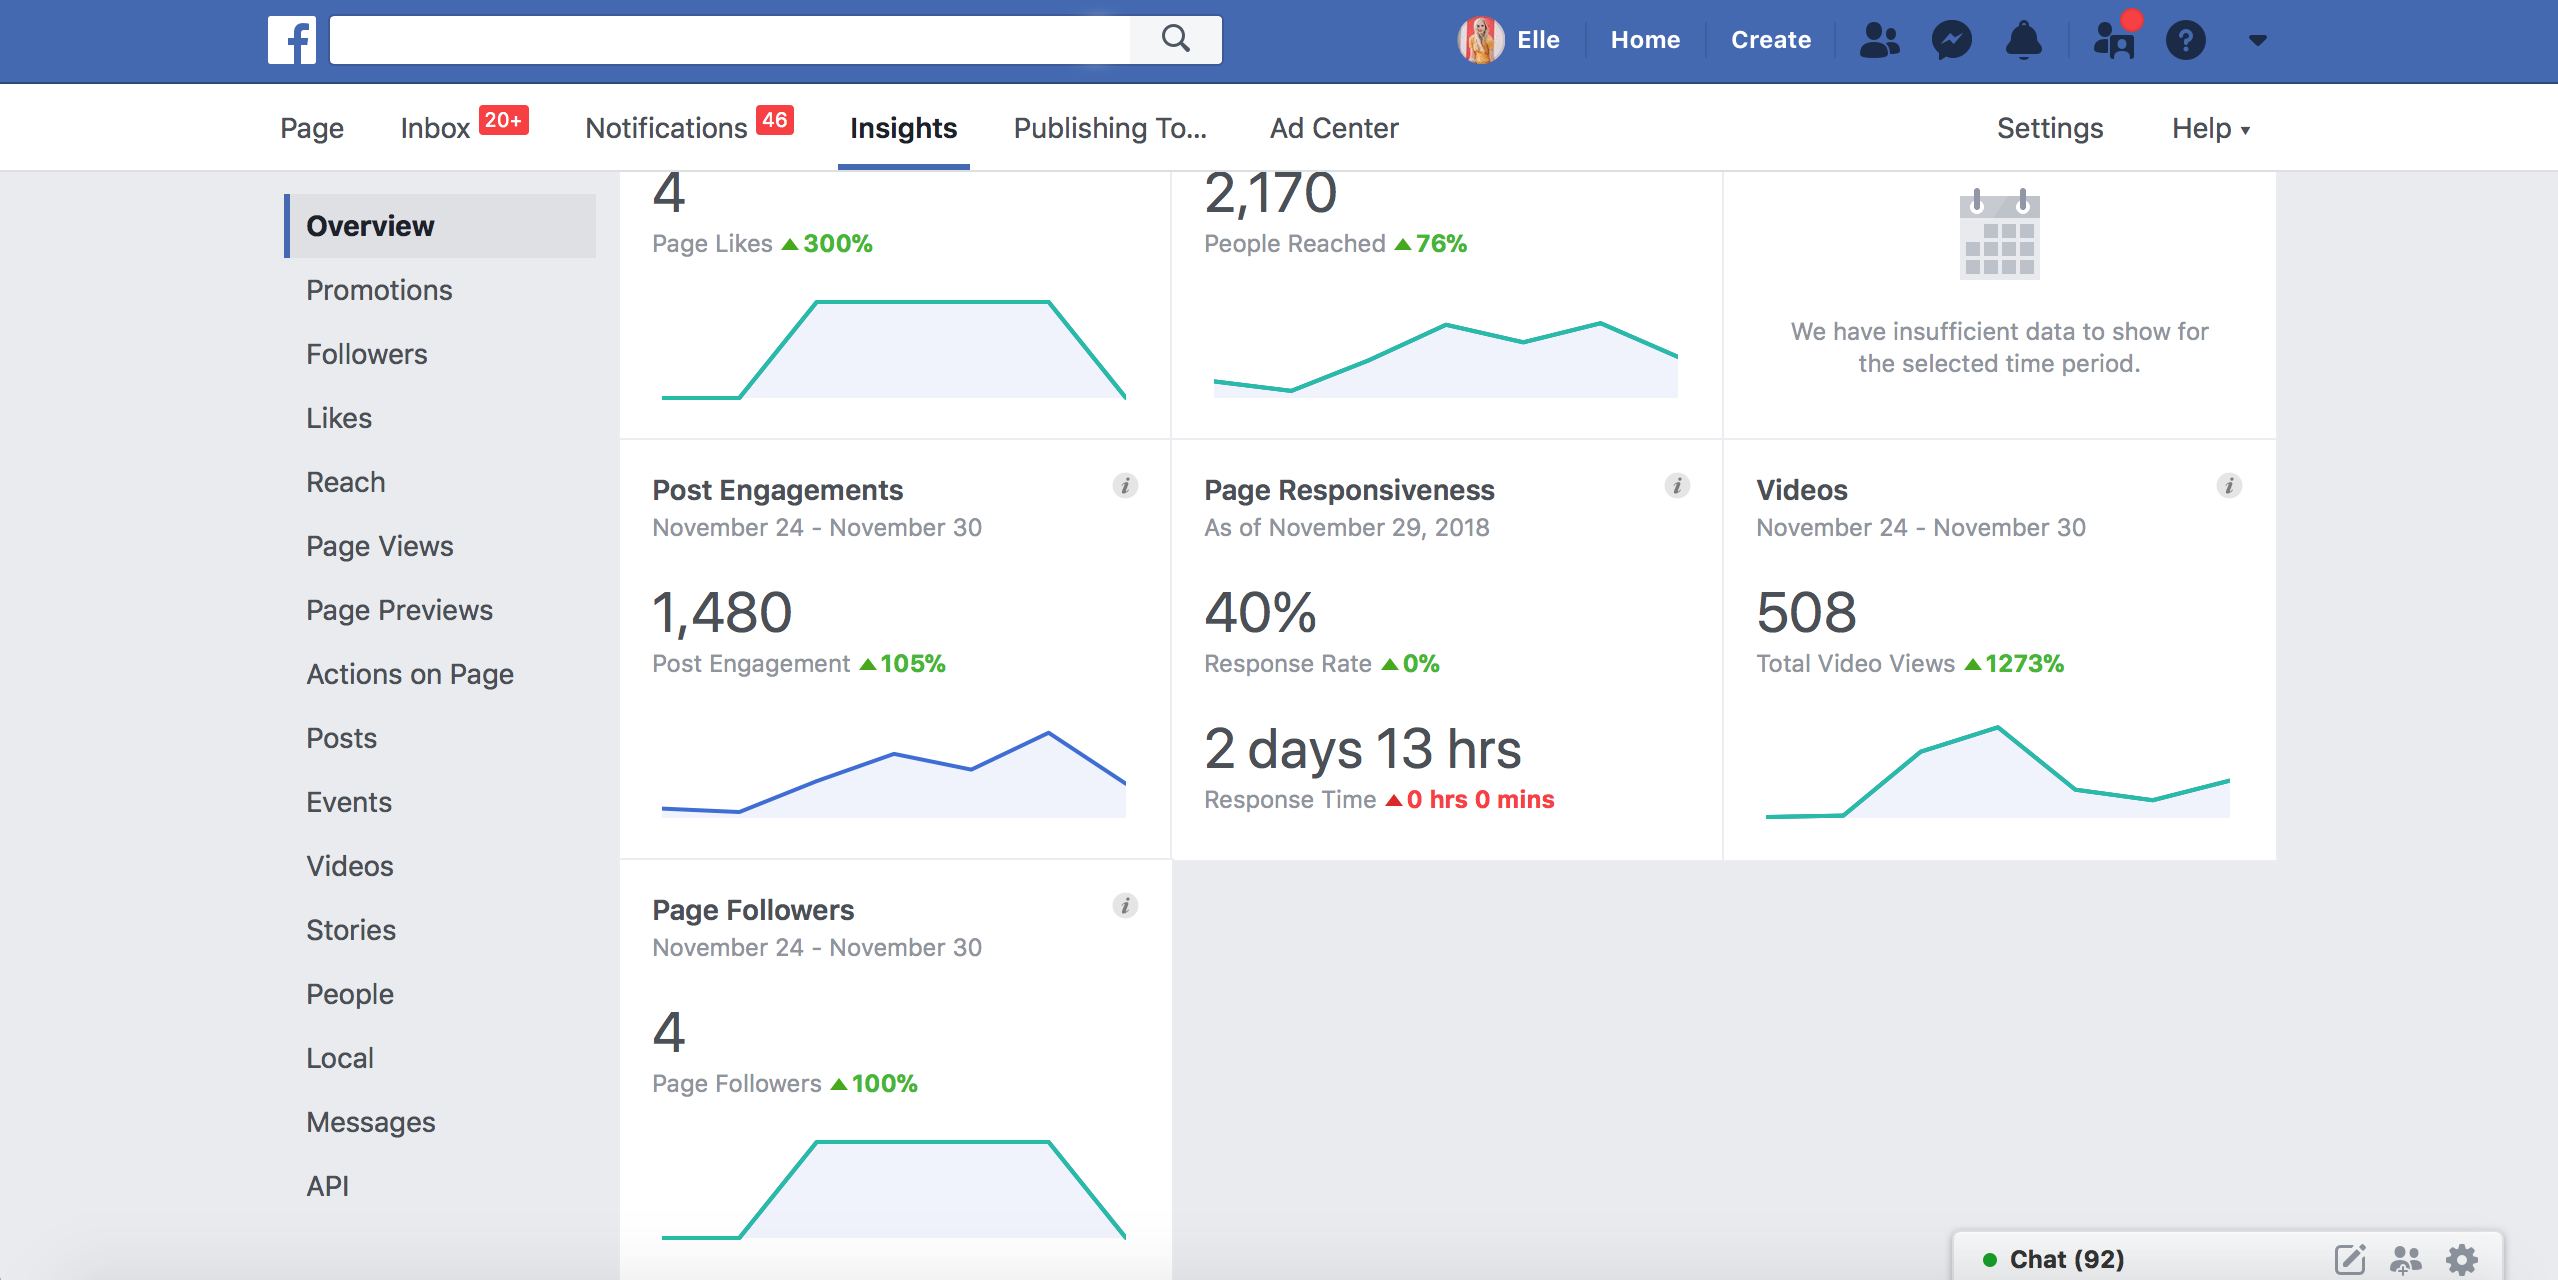 social-media-management-manager-facebook-instagram-outsourcing-results-insights-growth-02